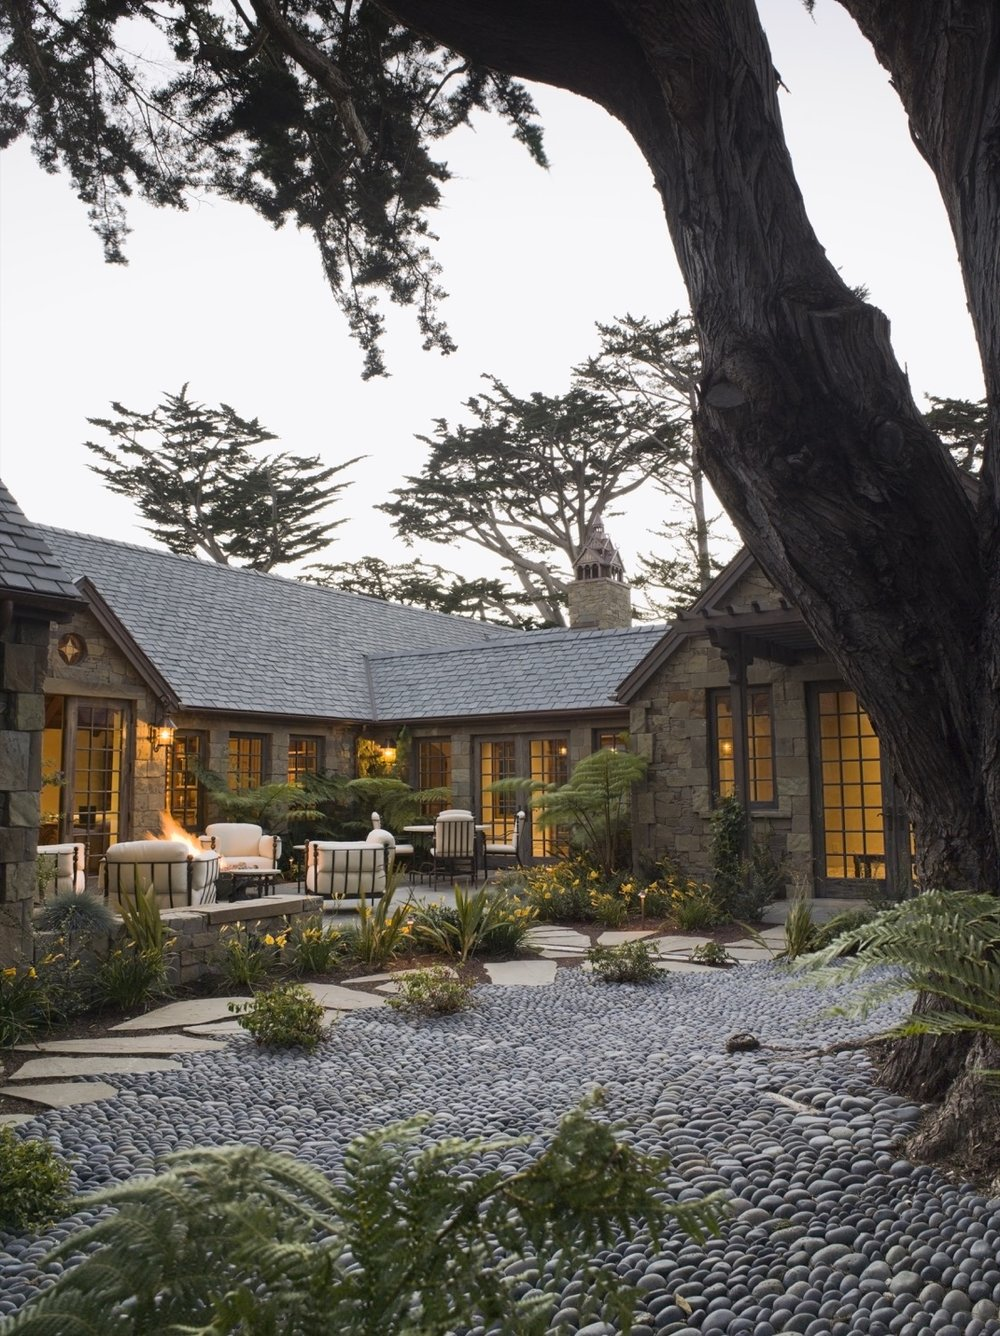 In a courtyard, paving created from large, smooth pebbles provides an unusual tactile texture.